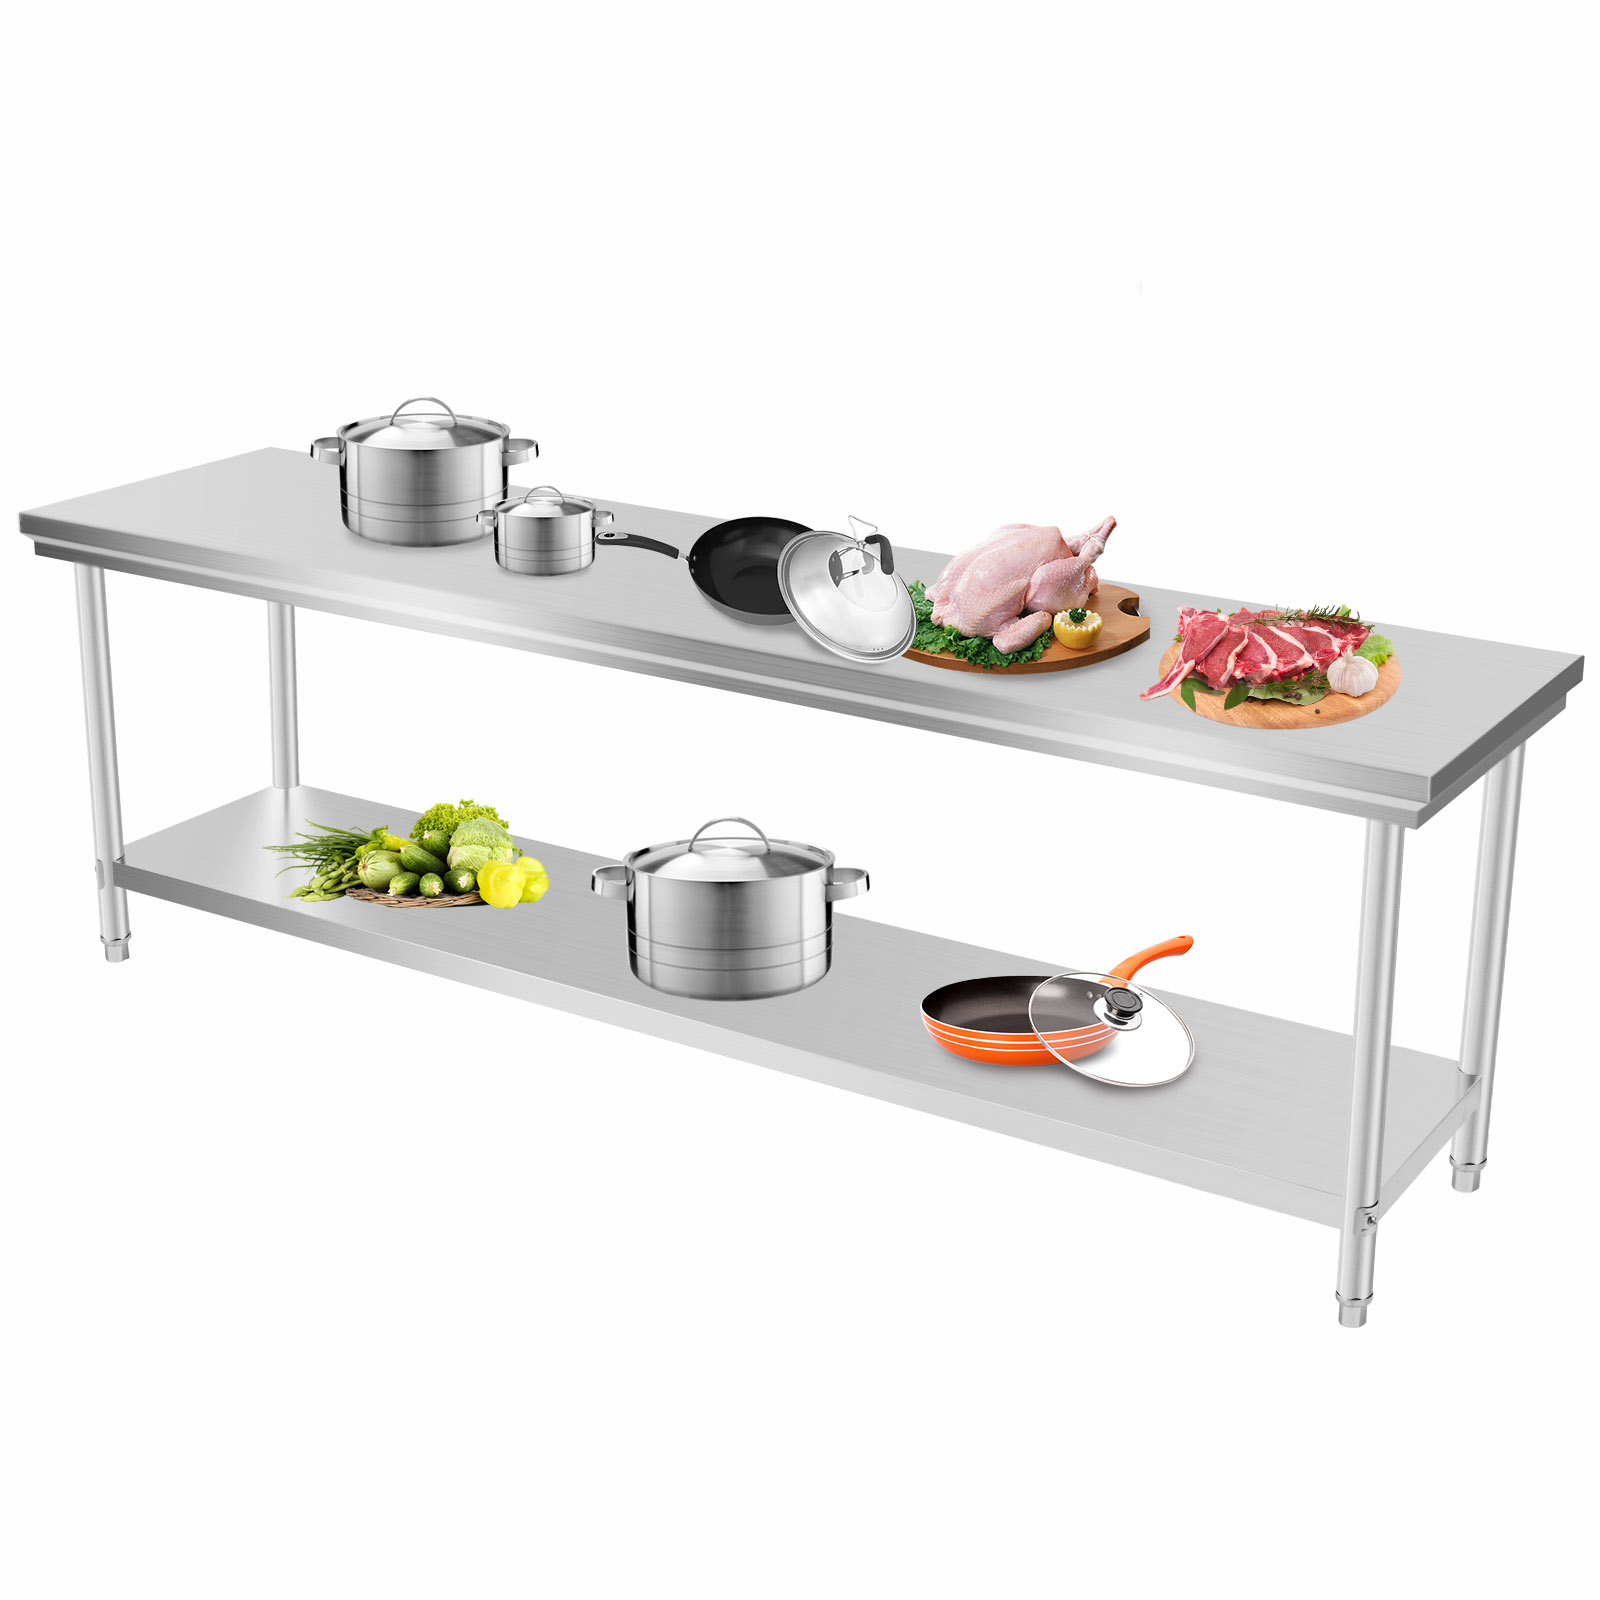 prep tables for kitchen blinds commercial 201 stainless steel work bench food